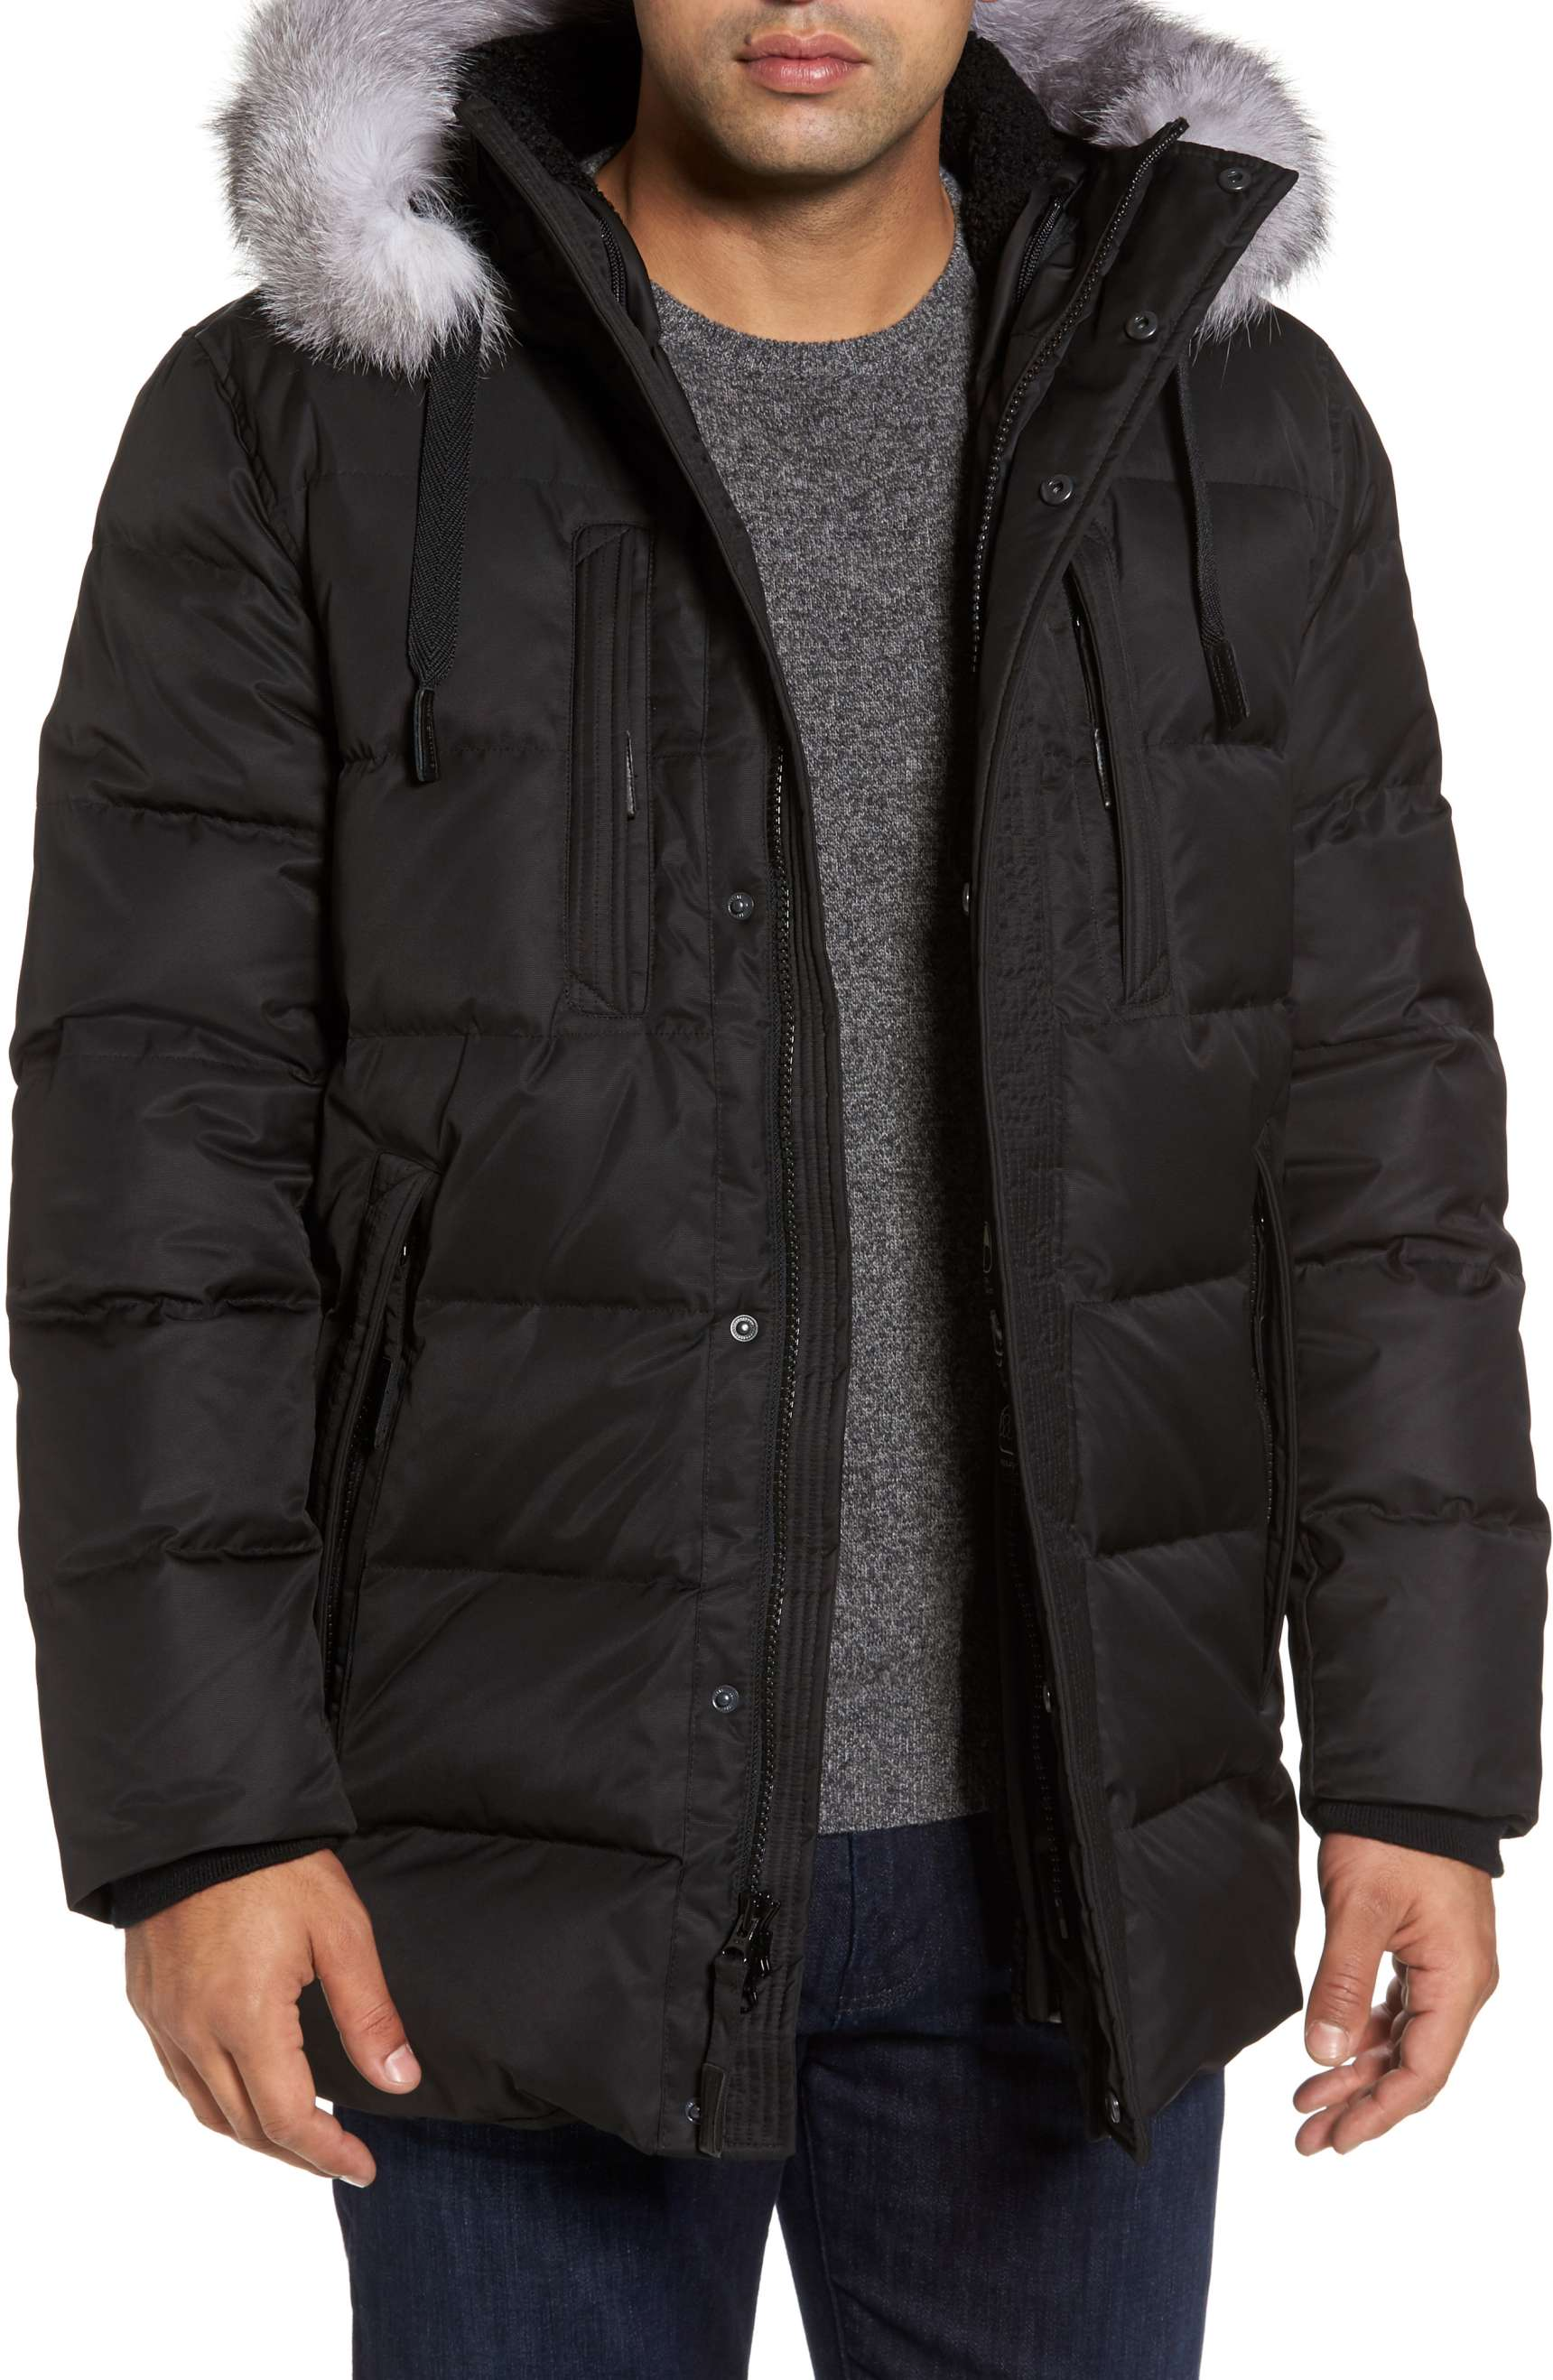 winter coats for men andrew marc quilted down winter jacket with fox fur trim in black - zgdvbrm